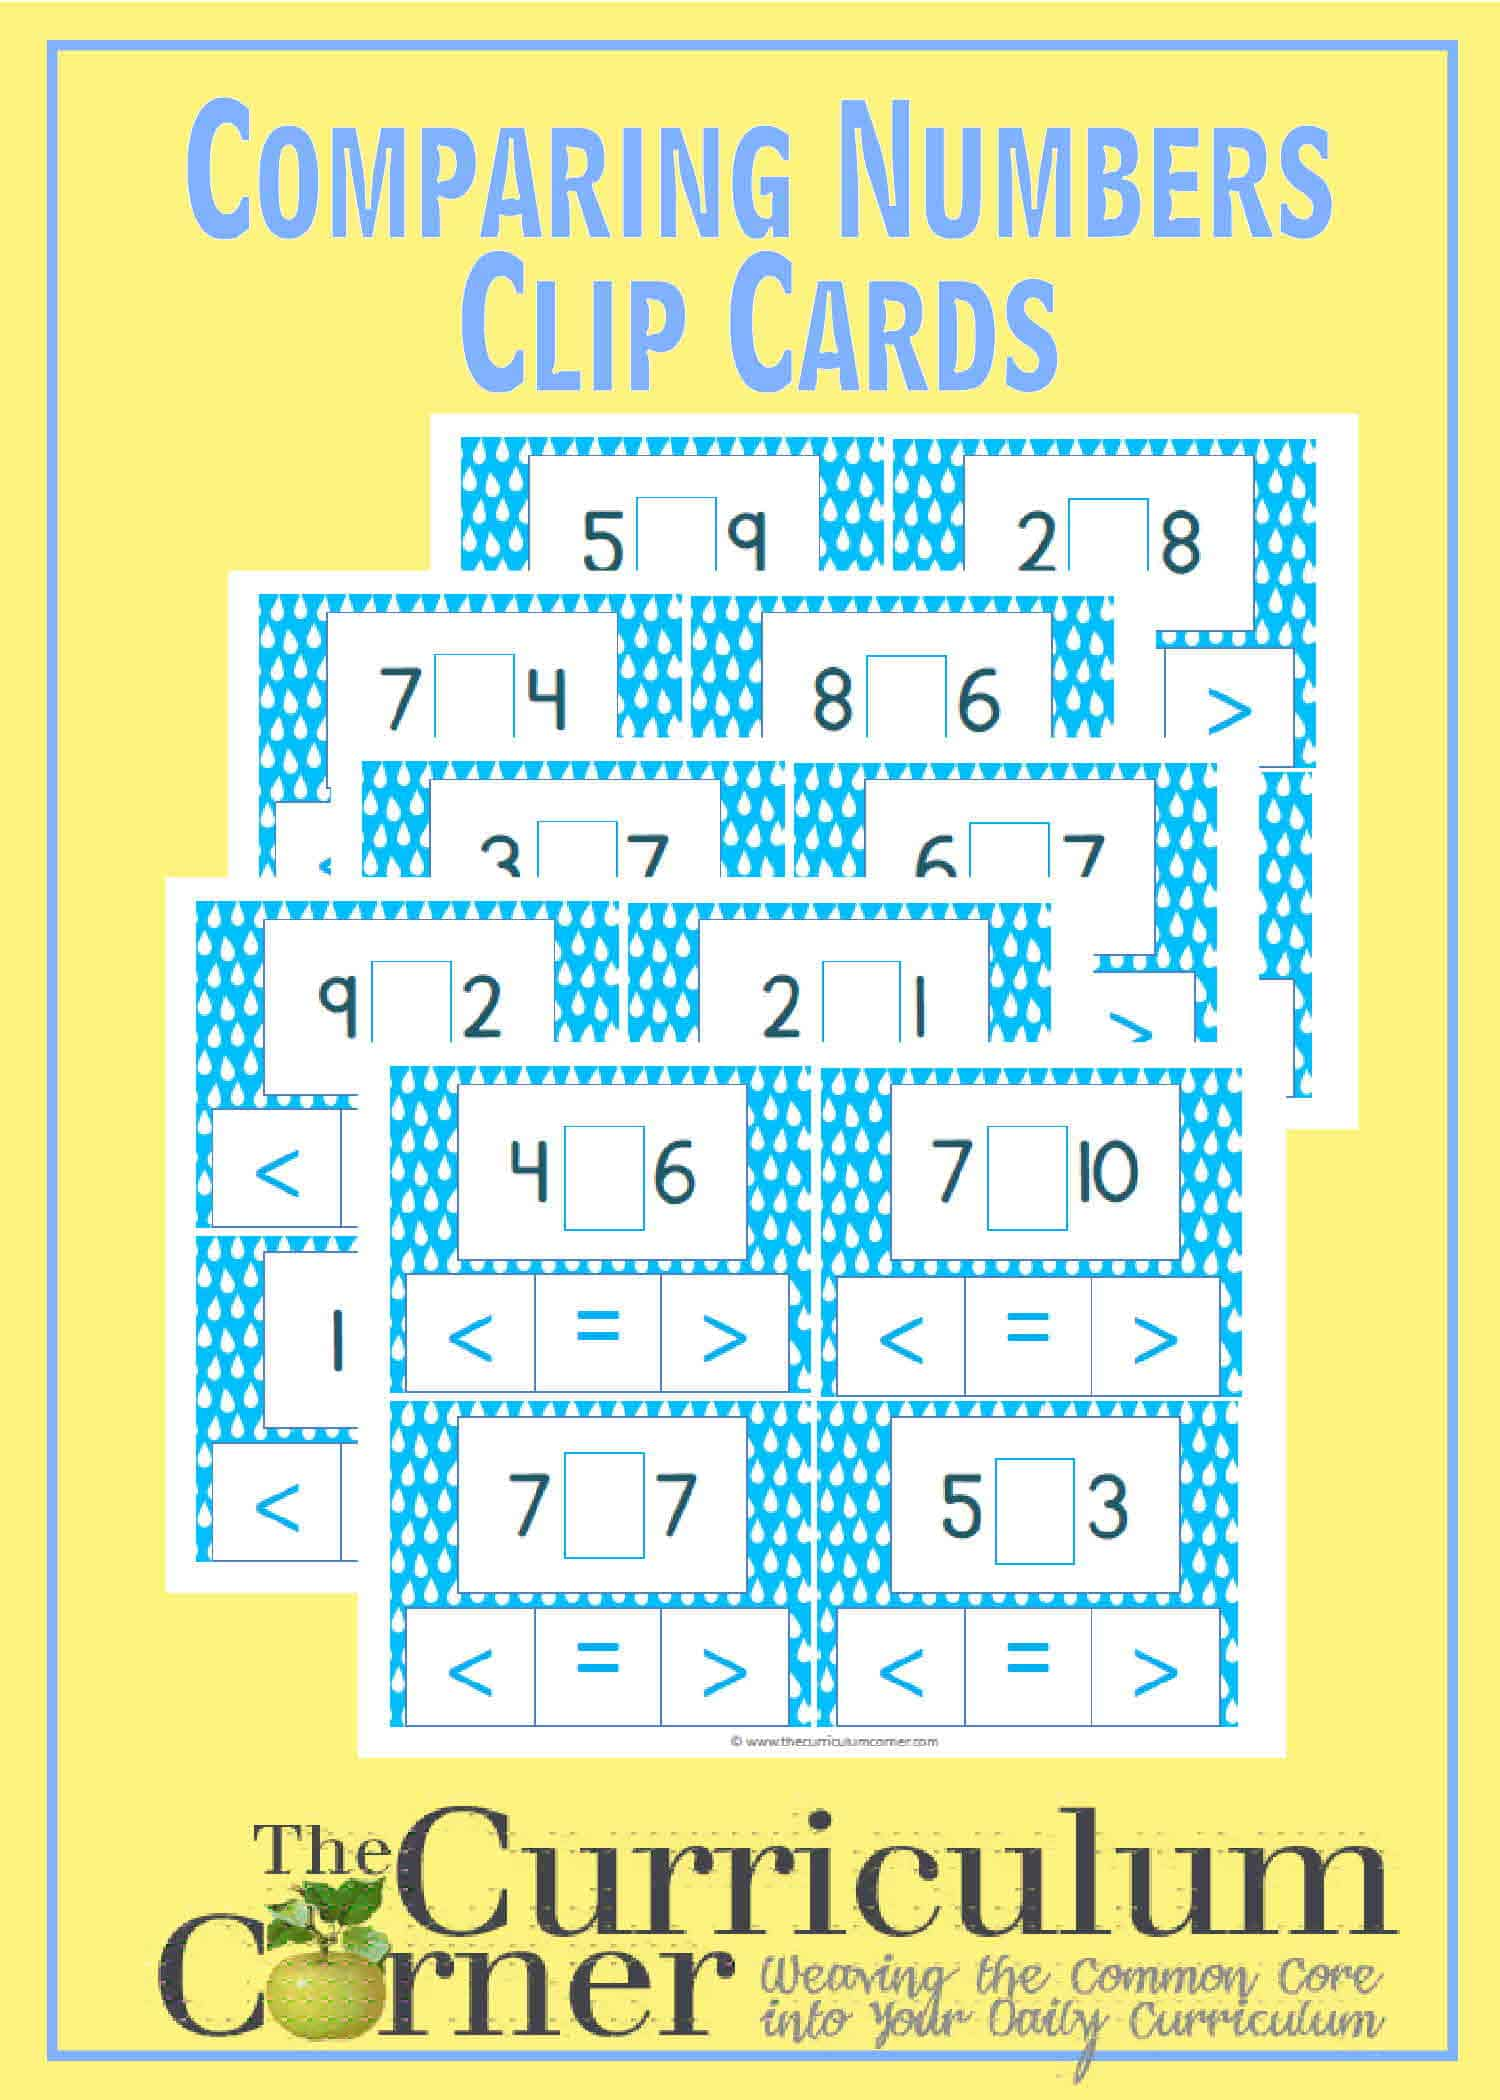 Comparing Smaller Numbers Clip Cards